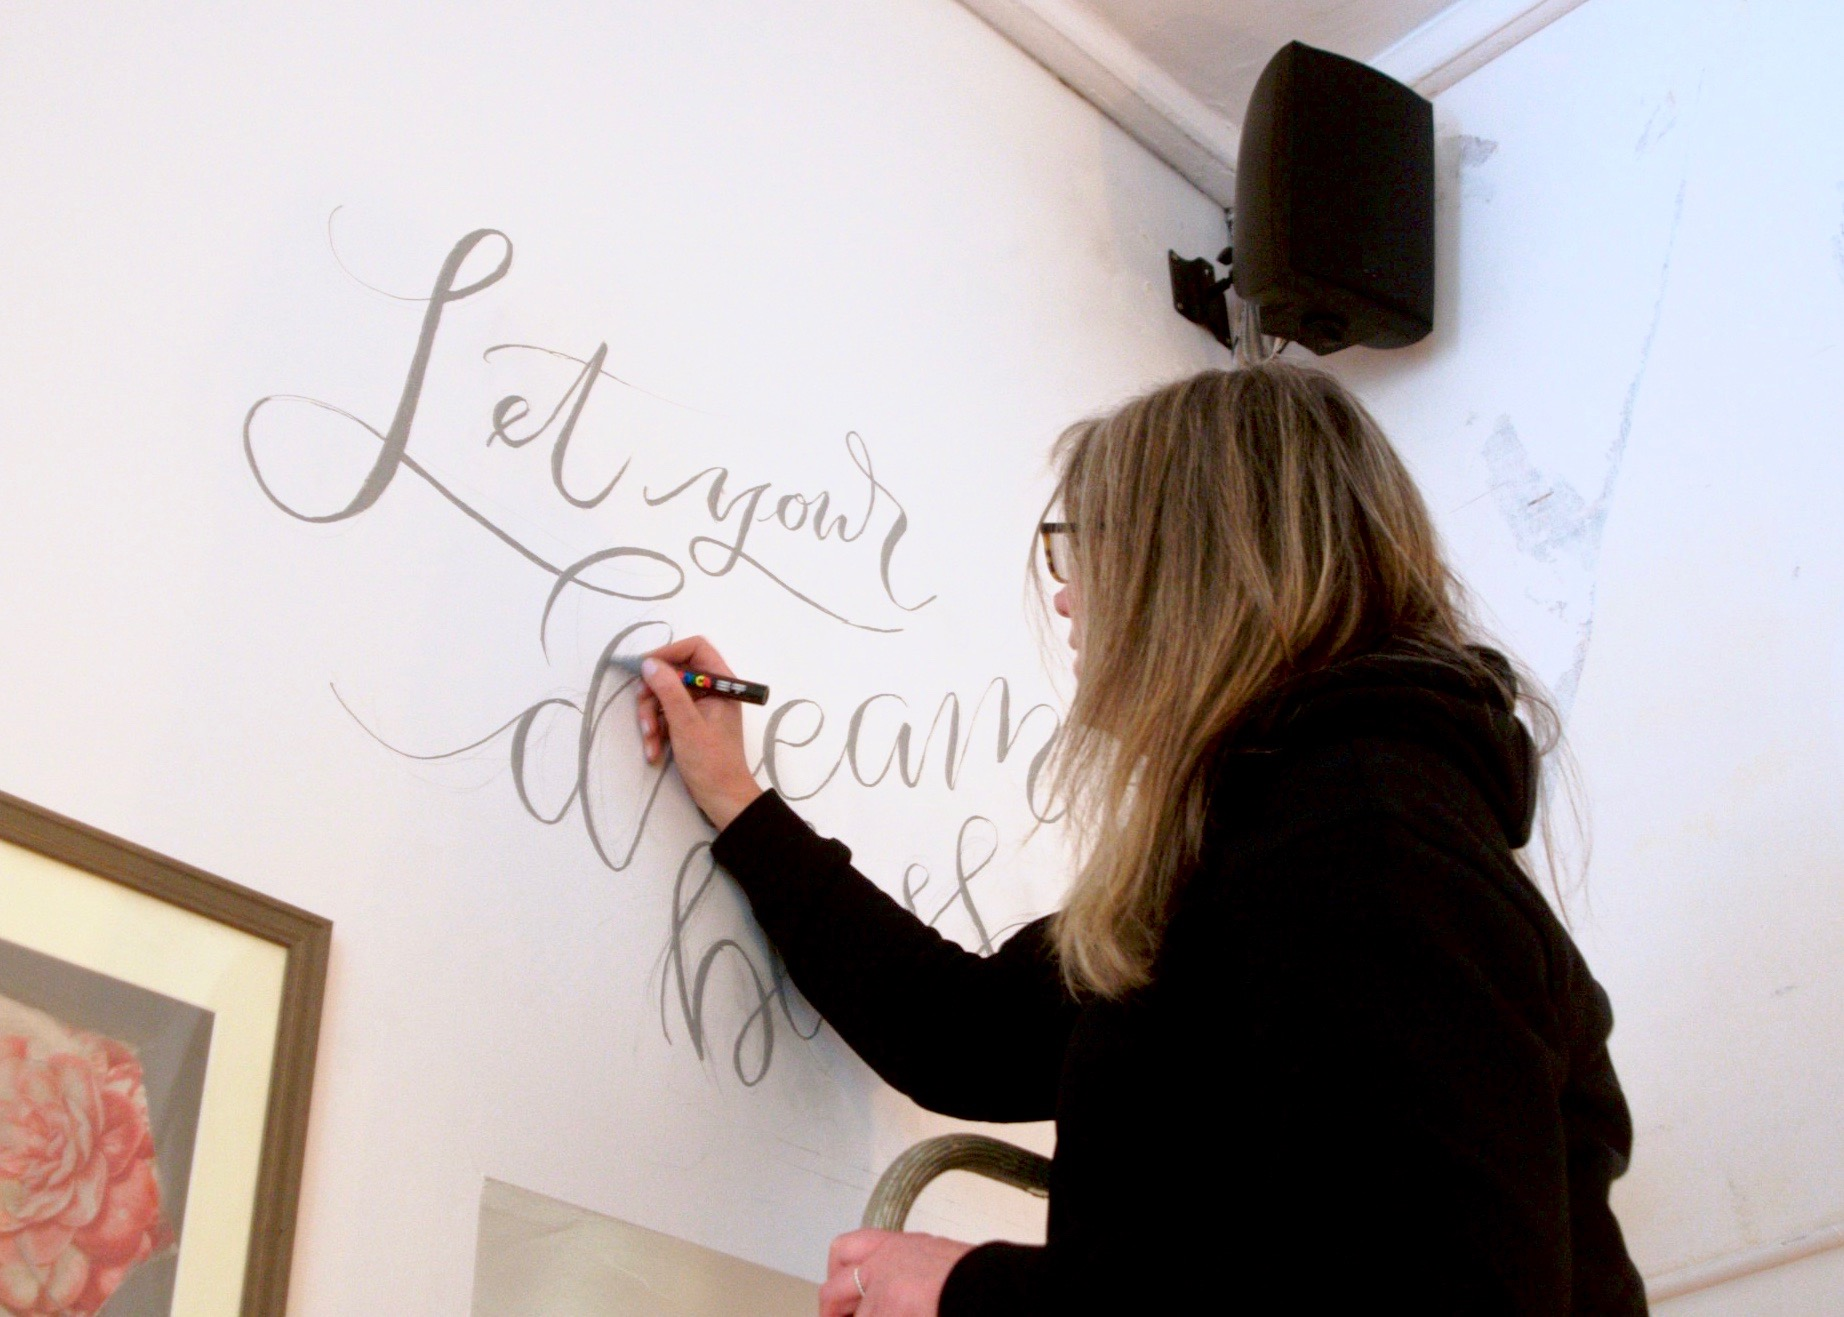 Hand Lettered Typography & Calligraphy Murals and Wall Art by Beverley Mellor & Polly Mellor or Mellor and Rose in Lancashire